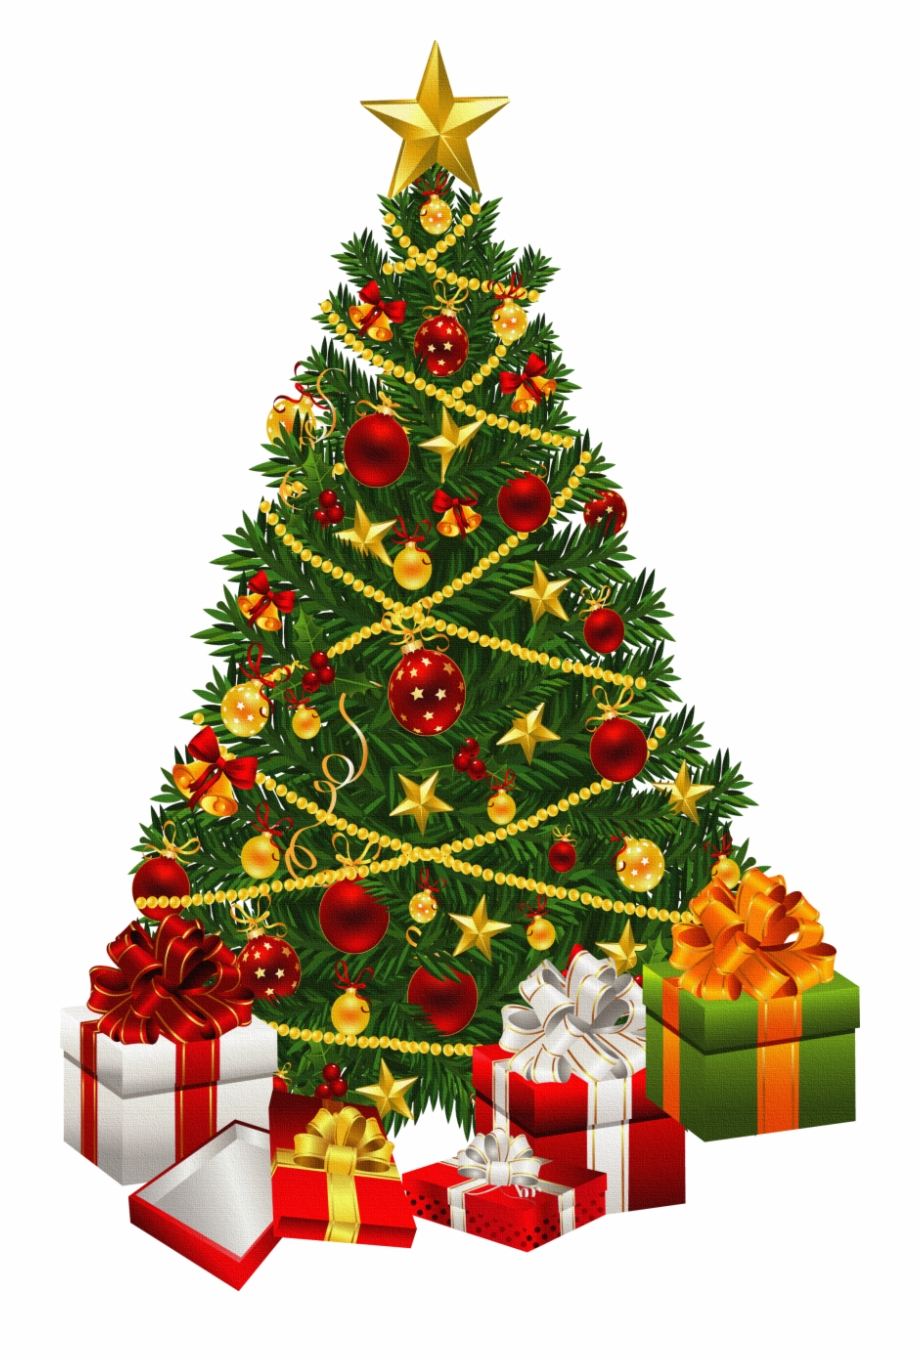 Transparent christmas tree images clipart graphic library stock Christmas Tree Clip Art - Clipart Transparent Christmas Tree ... graphic library stock